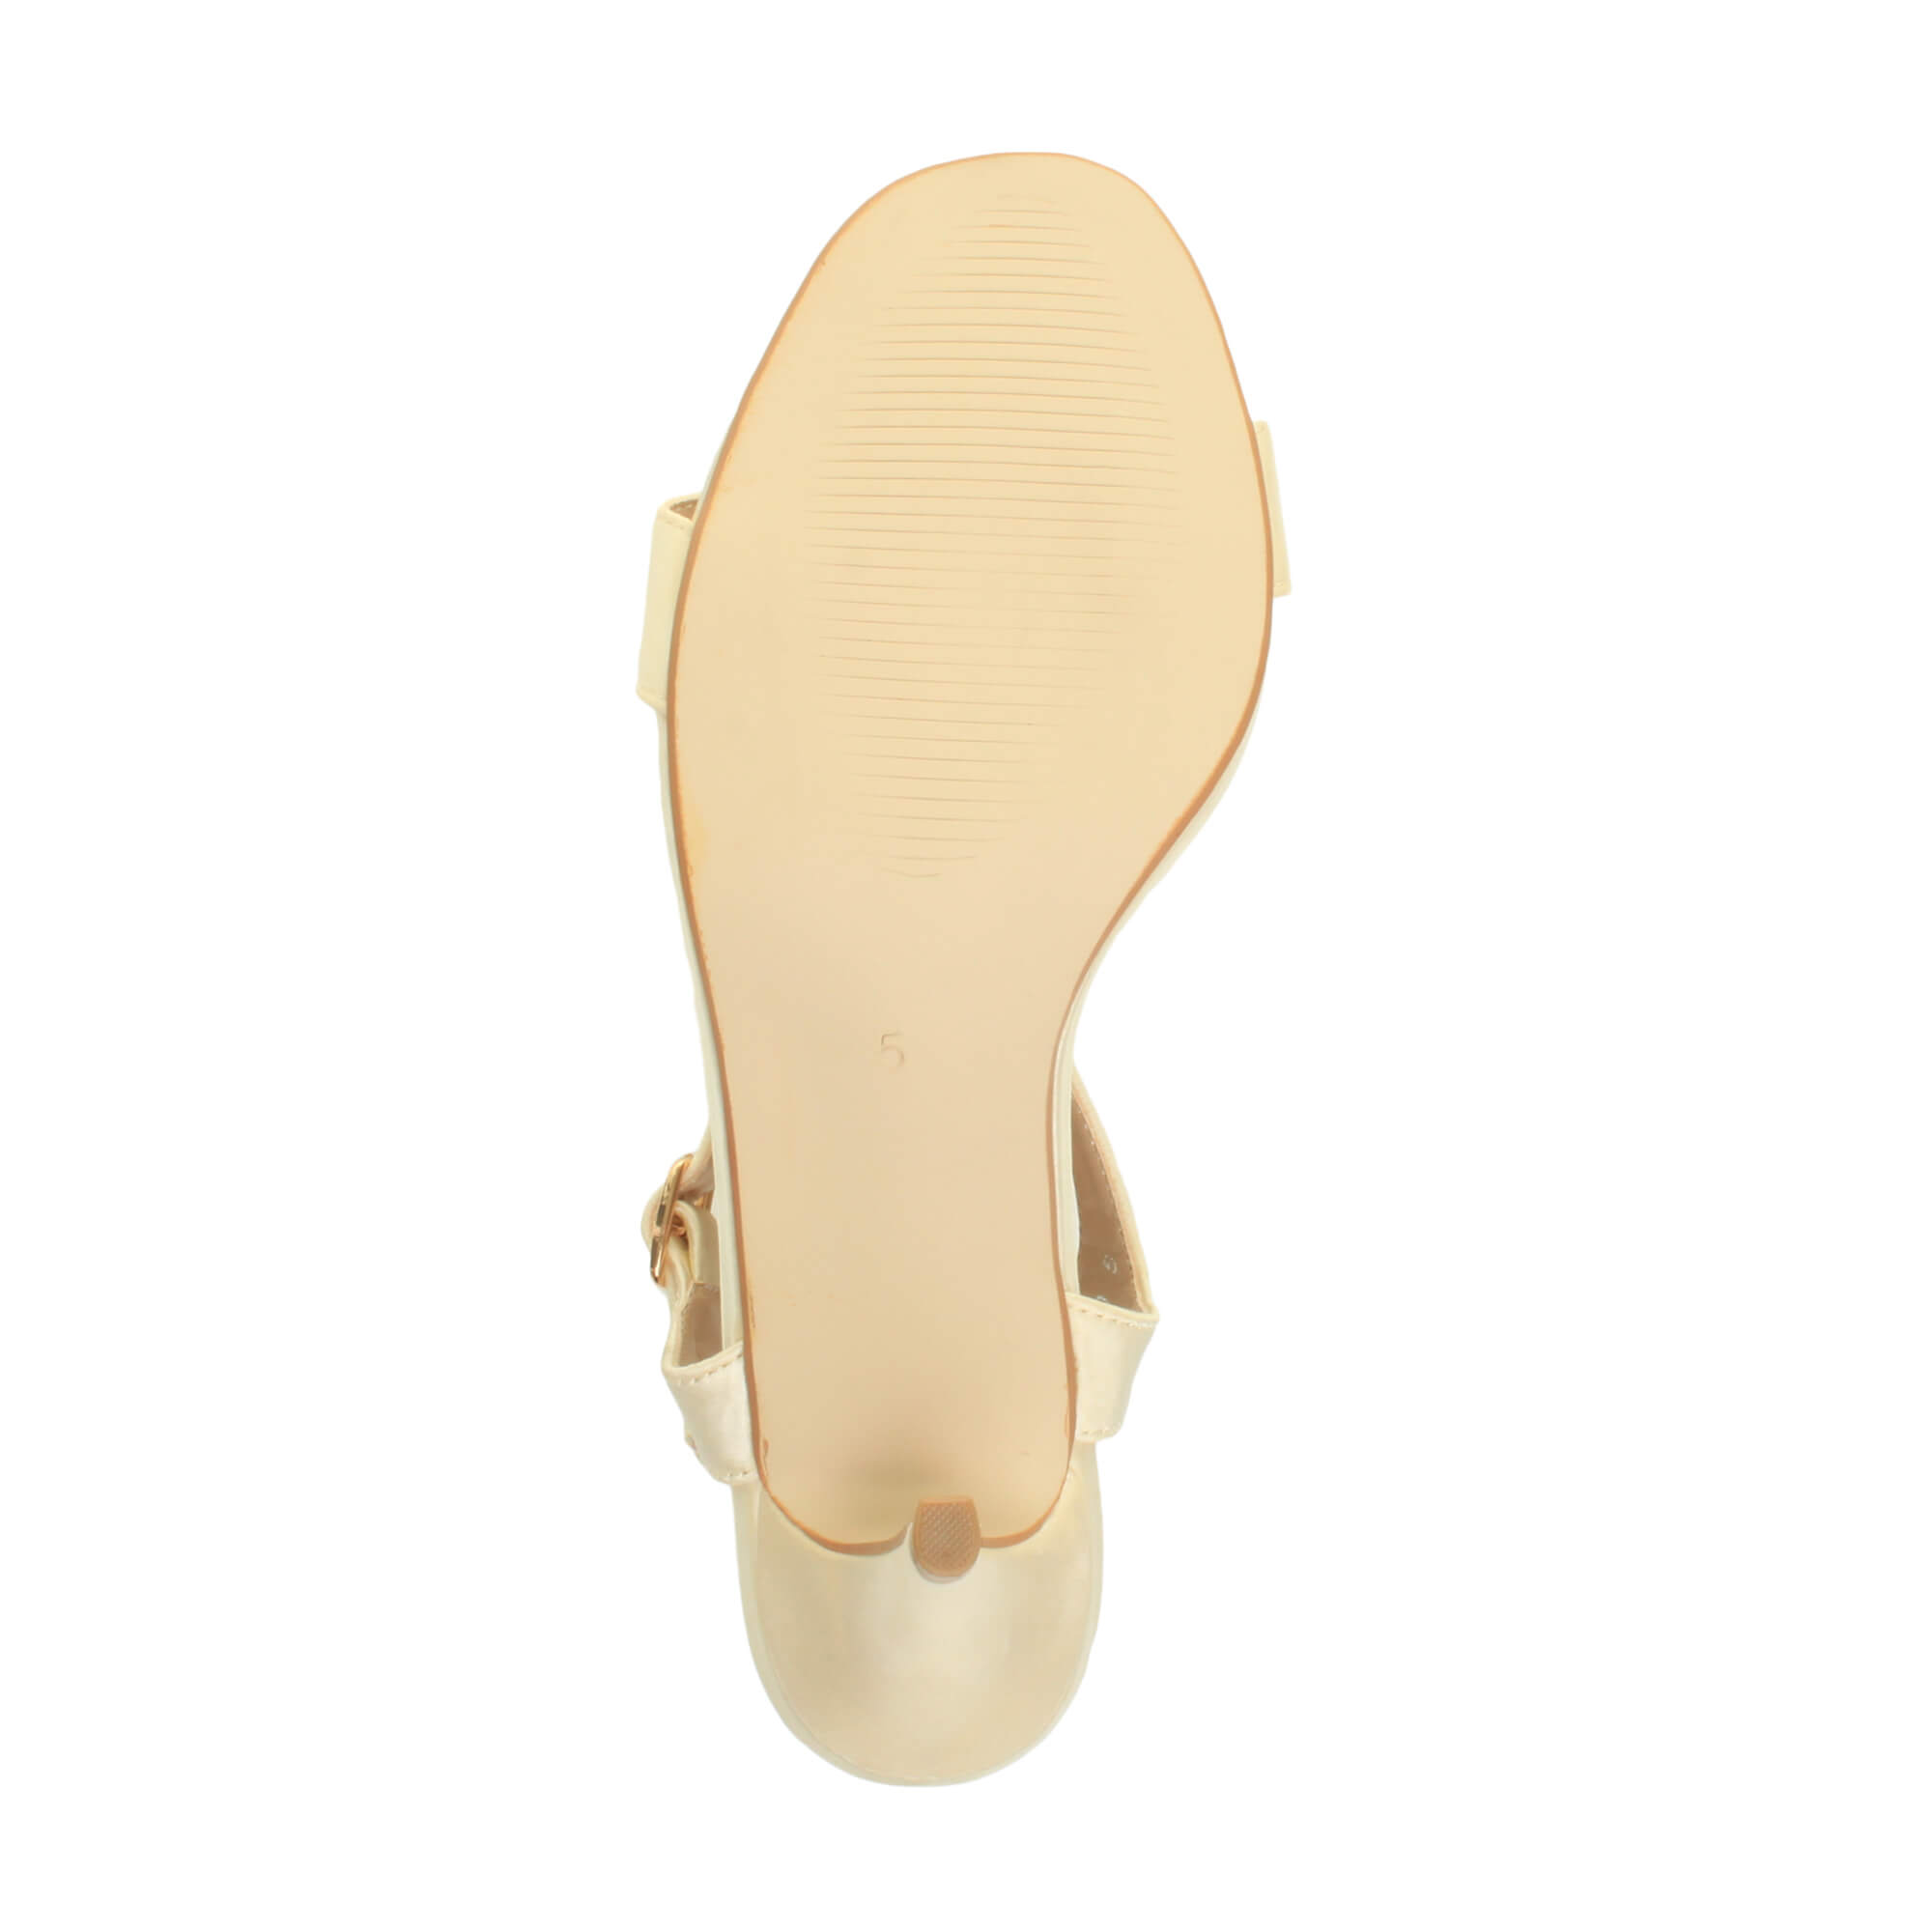 WOMENS-LADIES-HIGH-HEEL-BUCKLE-STRAPPY-BASIC-BARELY-THERE-SANDALS-SHOES-SIZE thumbnail 57